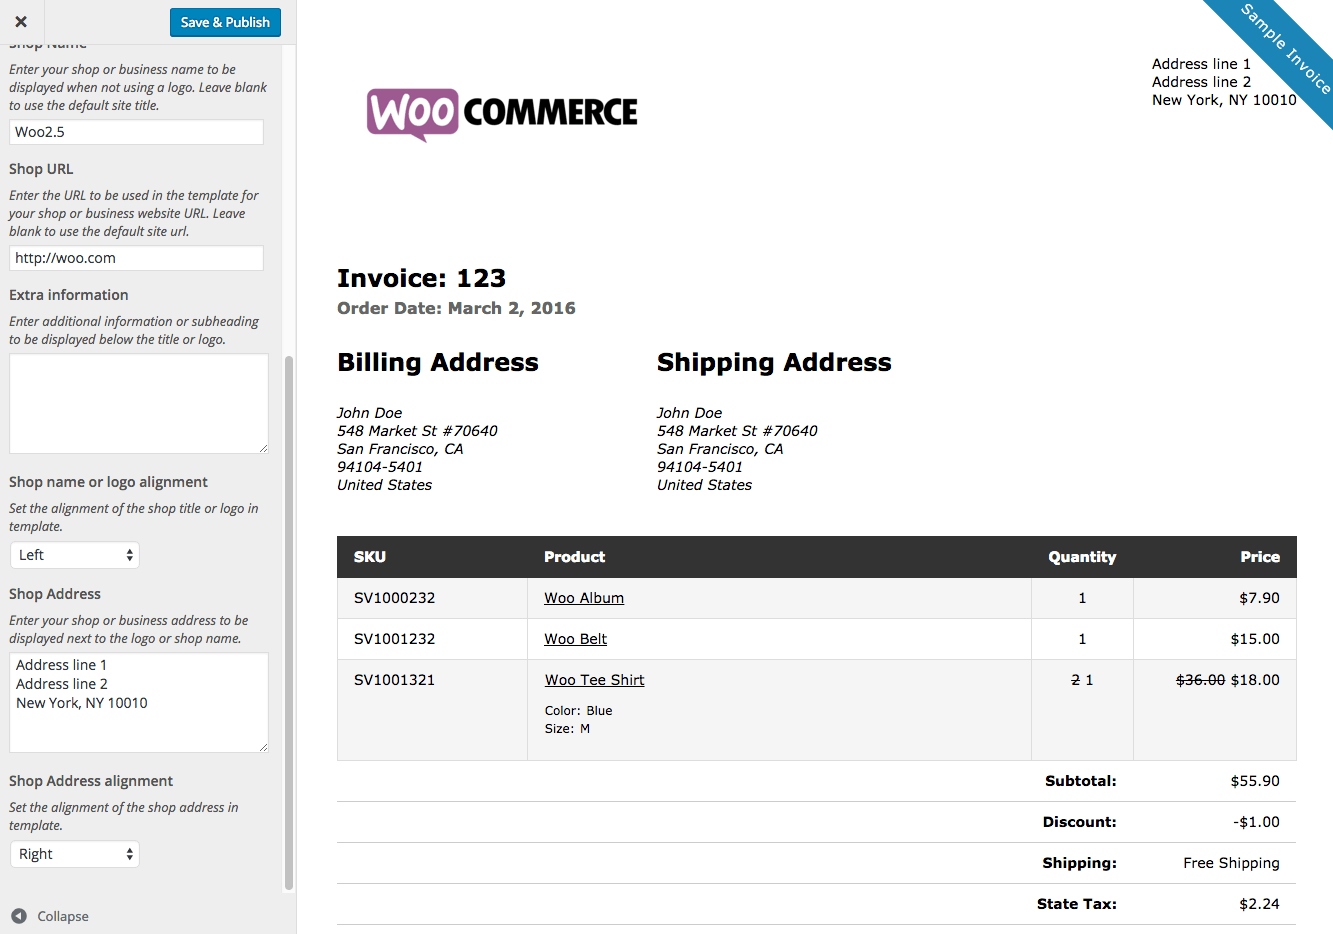 Usdgus  Remarkable Print Invoices Amp Packing Lists  Woocommerce With Outstanding Woocommerce Print Invoices  Packing Lists Customizer With Extraordinary Newegg Receipt Also Renters Receipt In Addition Uscis Case Status Without Receipt Number And Tax Receipt Organizer As Well As What Is Receipt Paper Made Of Additionally Mail Receipt From Woocommercecom With Usdgus  Outstanding Print Invoices Amp Packing Lists  Woocommerce With Extraordinary Woocommerce Print Invoices  Packing Lists Customizer And Remarkable Newegg Receipt Also Renters Receipt In Addition Uscis Case Status Without Receipt Number From Woocommercecom